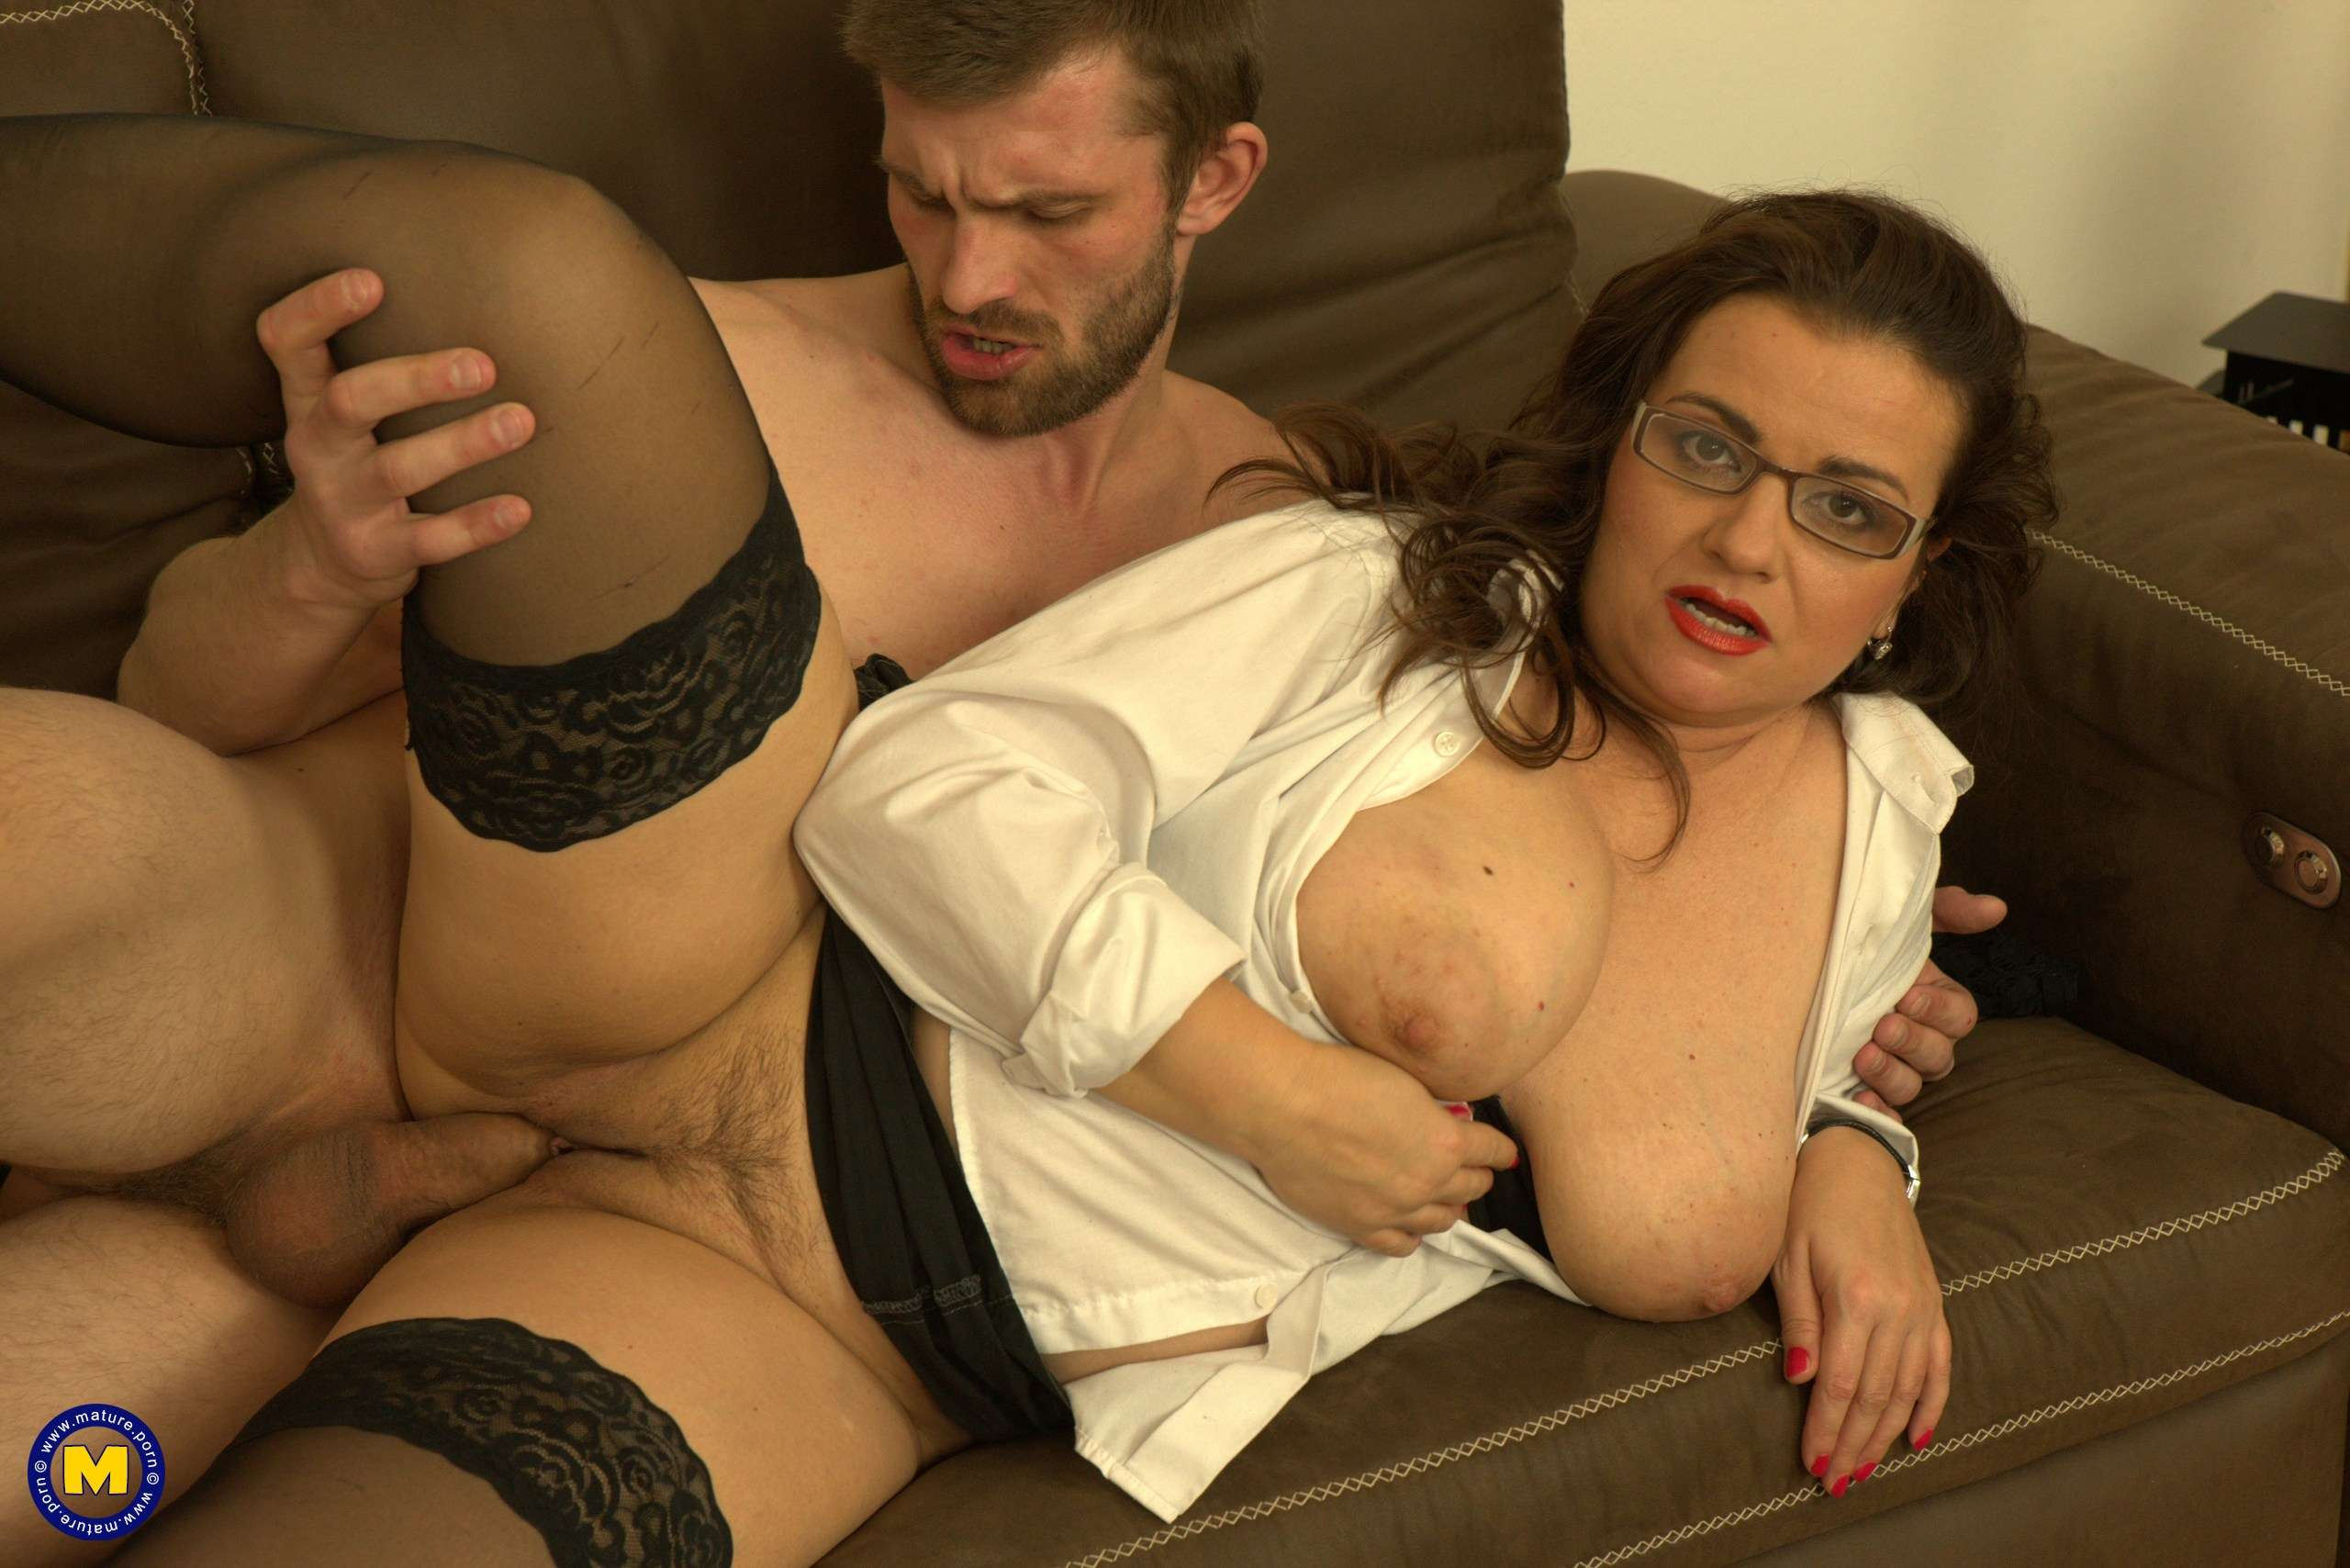 Curvy big breasted mature lady having fun with her younger lover